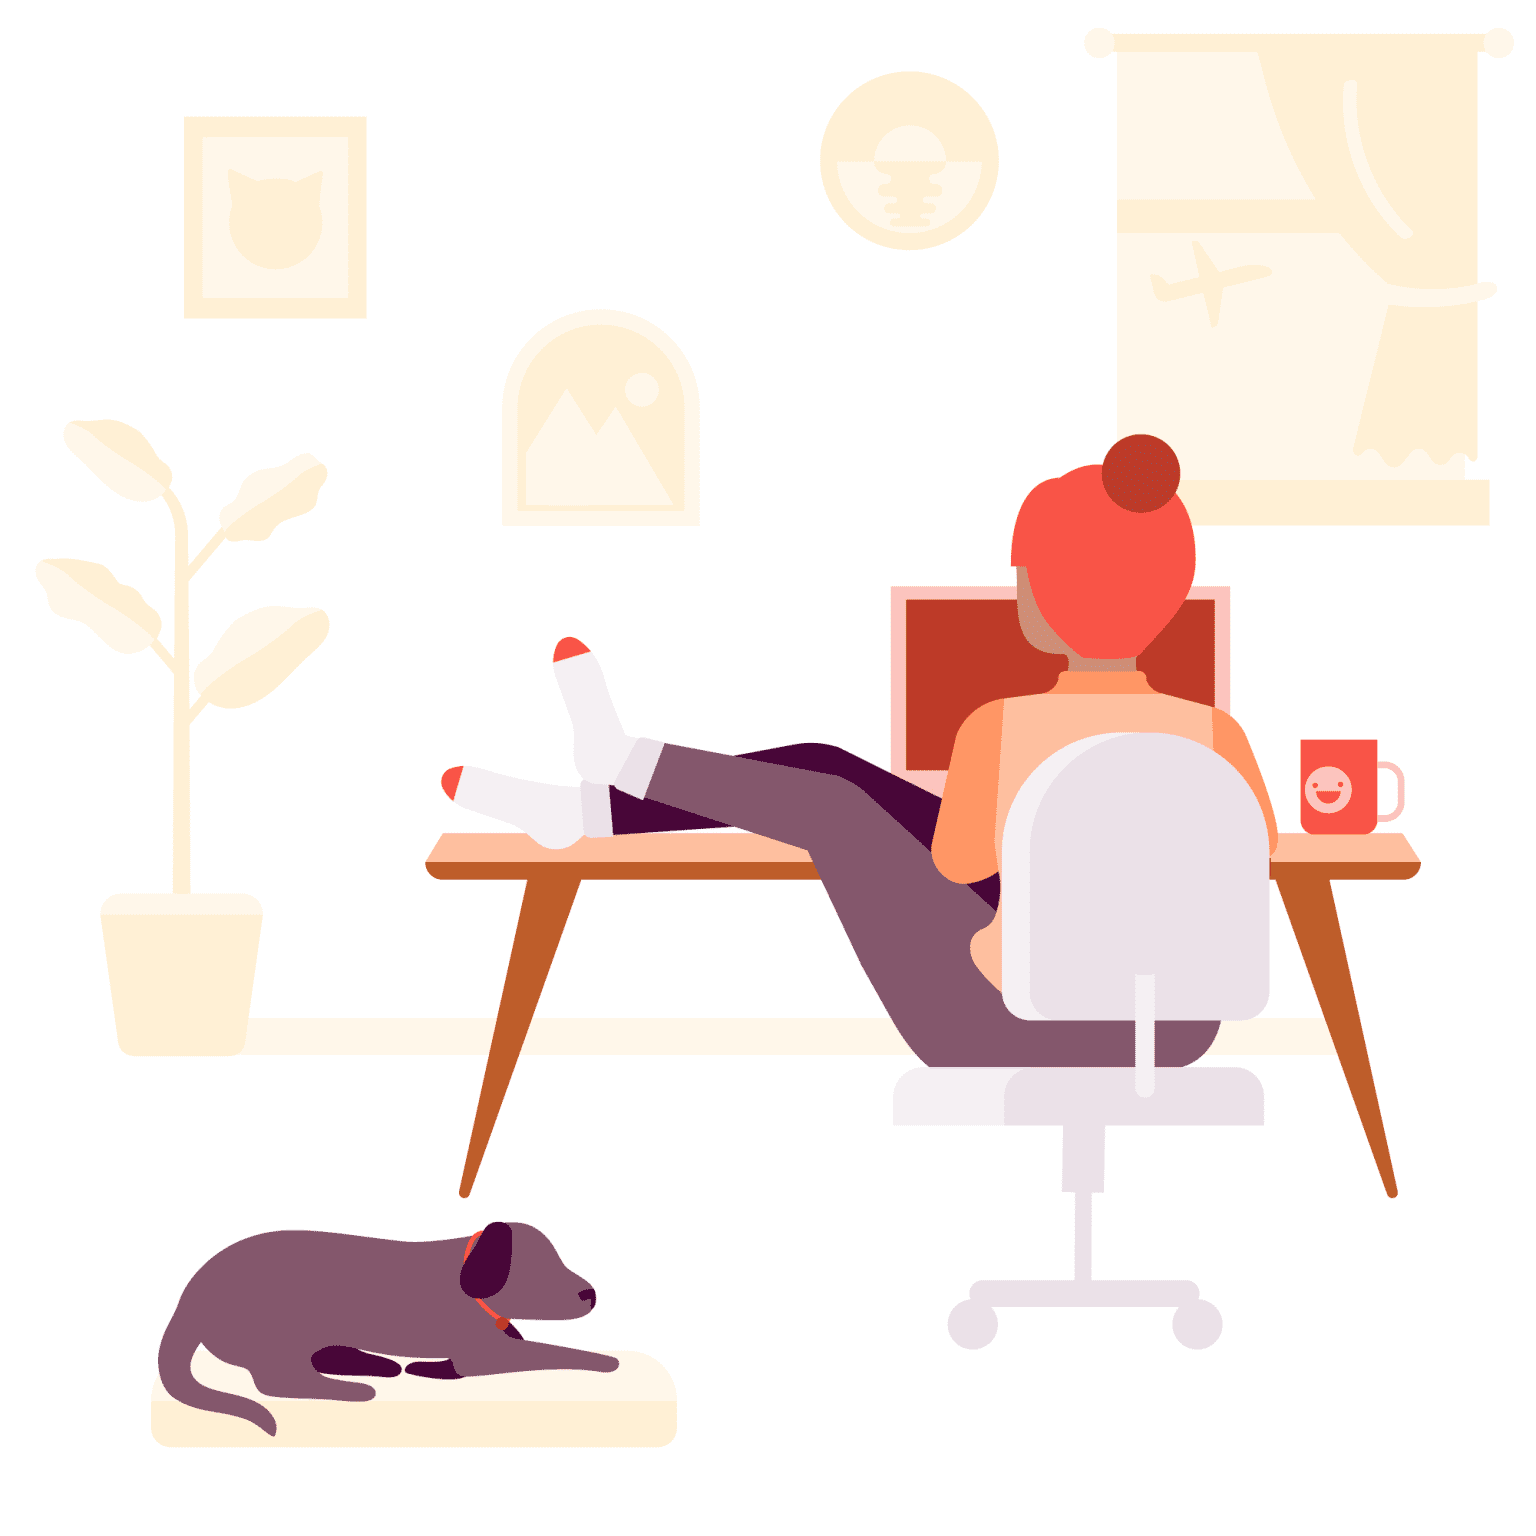 Illustrations for Product